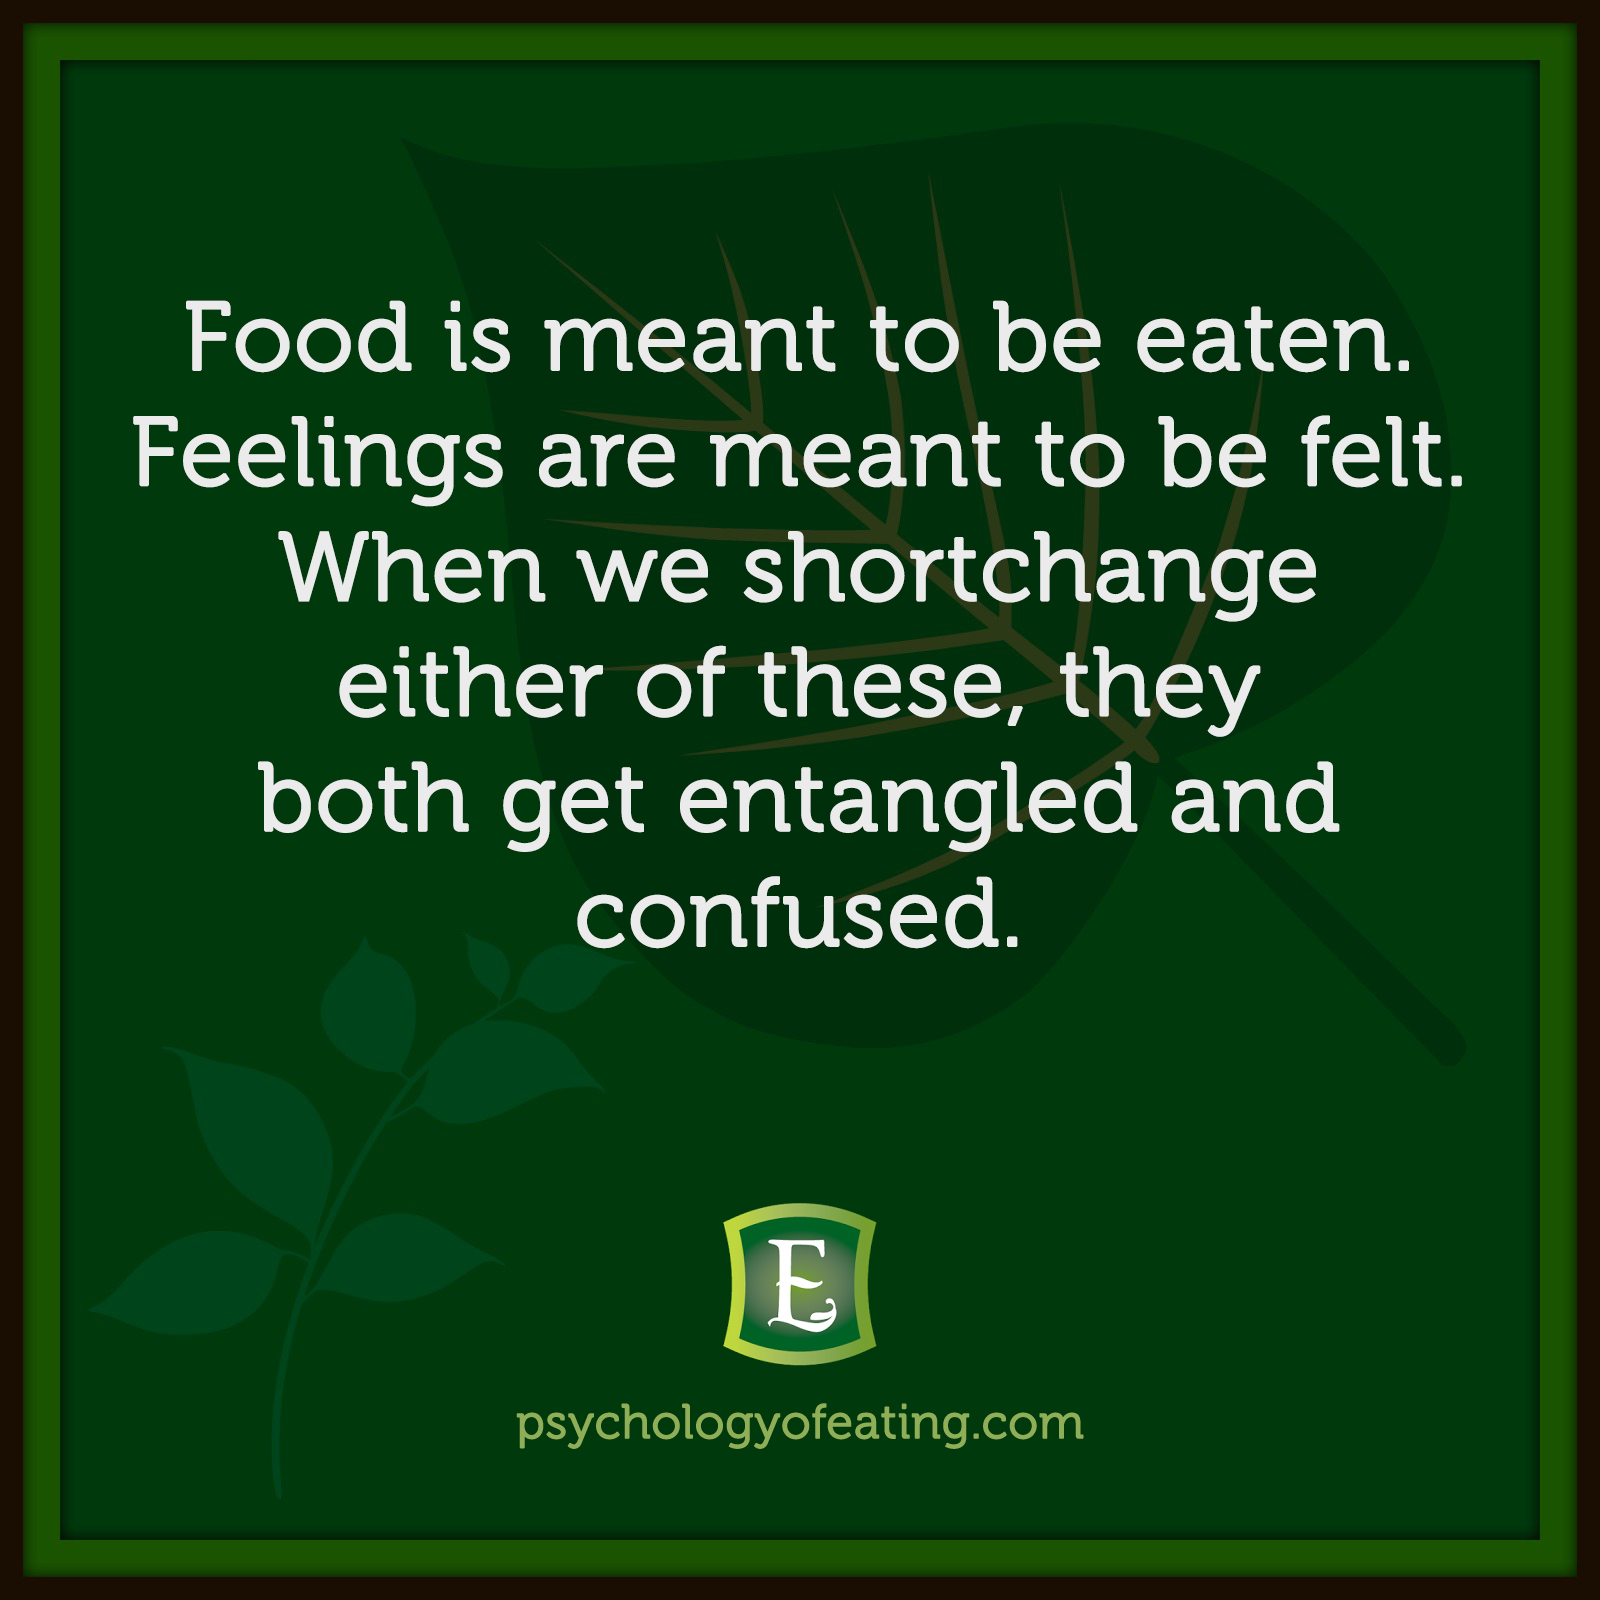 Food is meant to be eaten. Feelings are meant to be felt. When we shortchange either of these, they both get entangled and confused. #health #nutrition #eatingpsychology #IPE